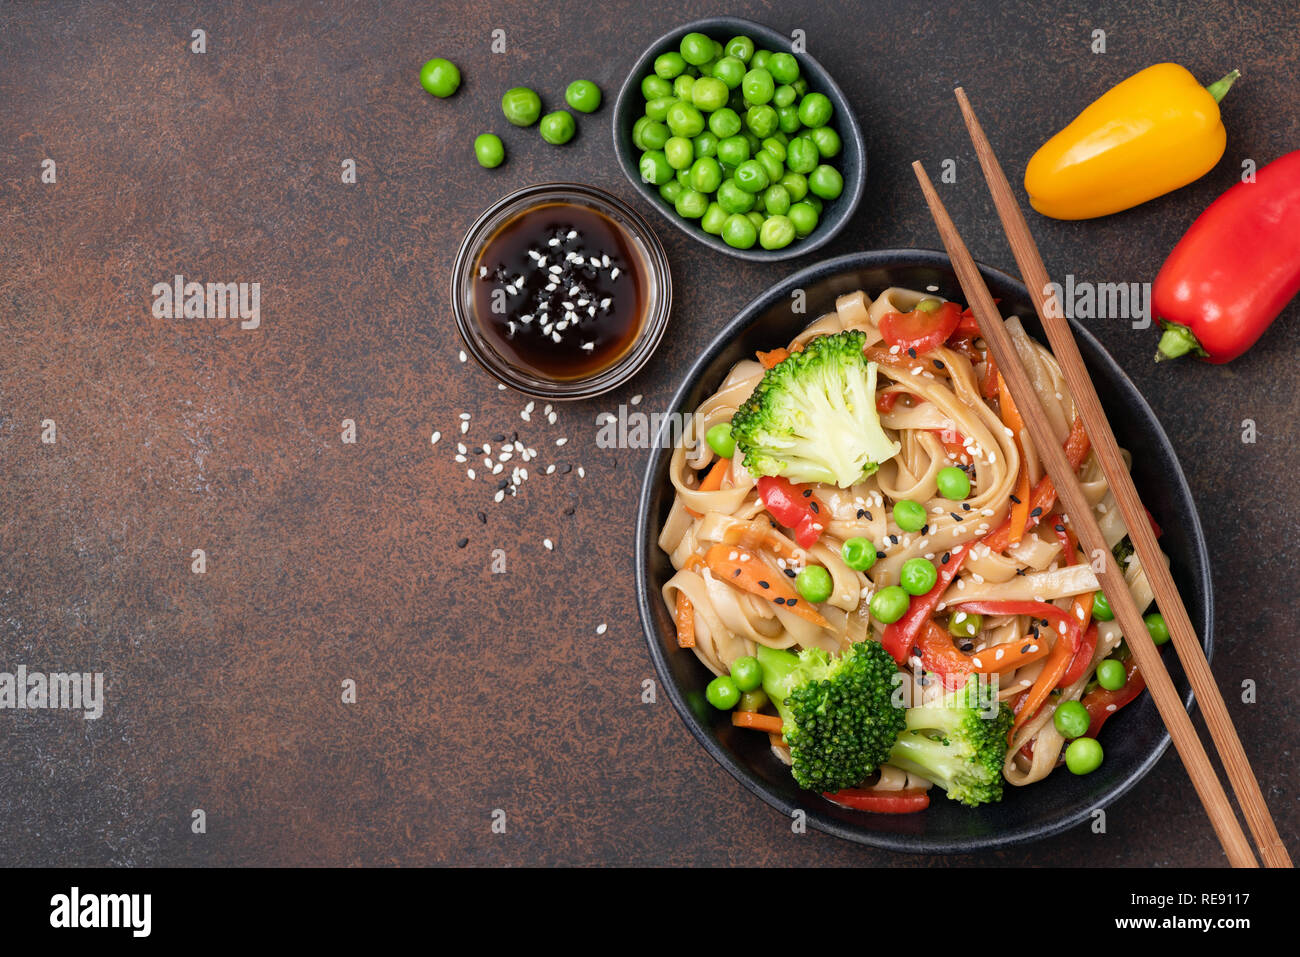 Noodles stir fry with vegetables. Udon noodles with broccoli, green pea, carrot, pepper and teriyaki sauce Stock Photo